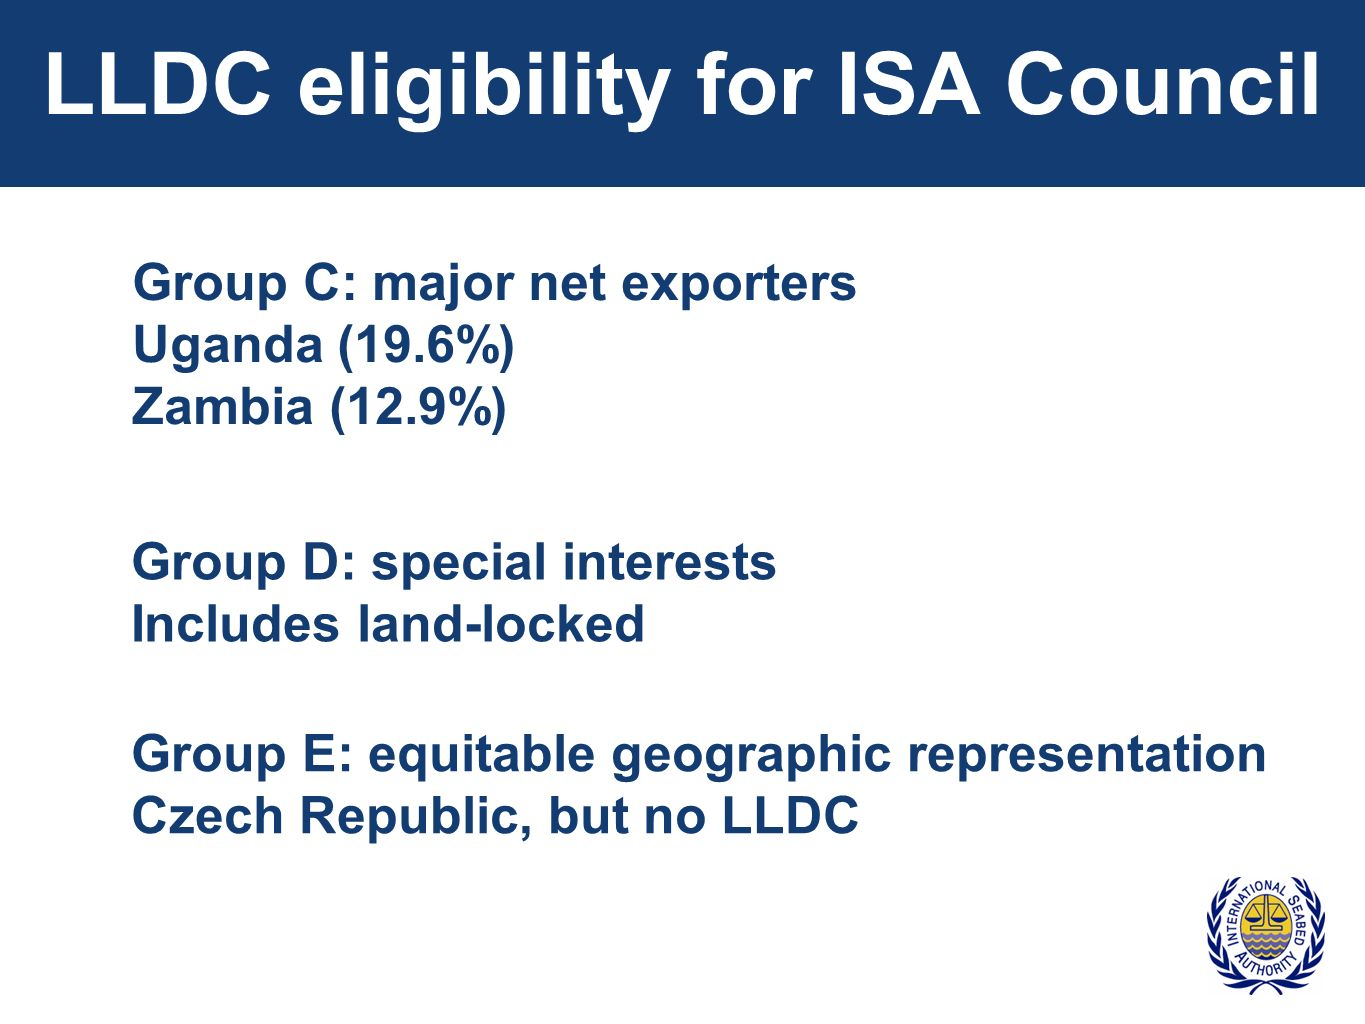 LLDC eligibility for ISA Council